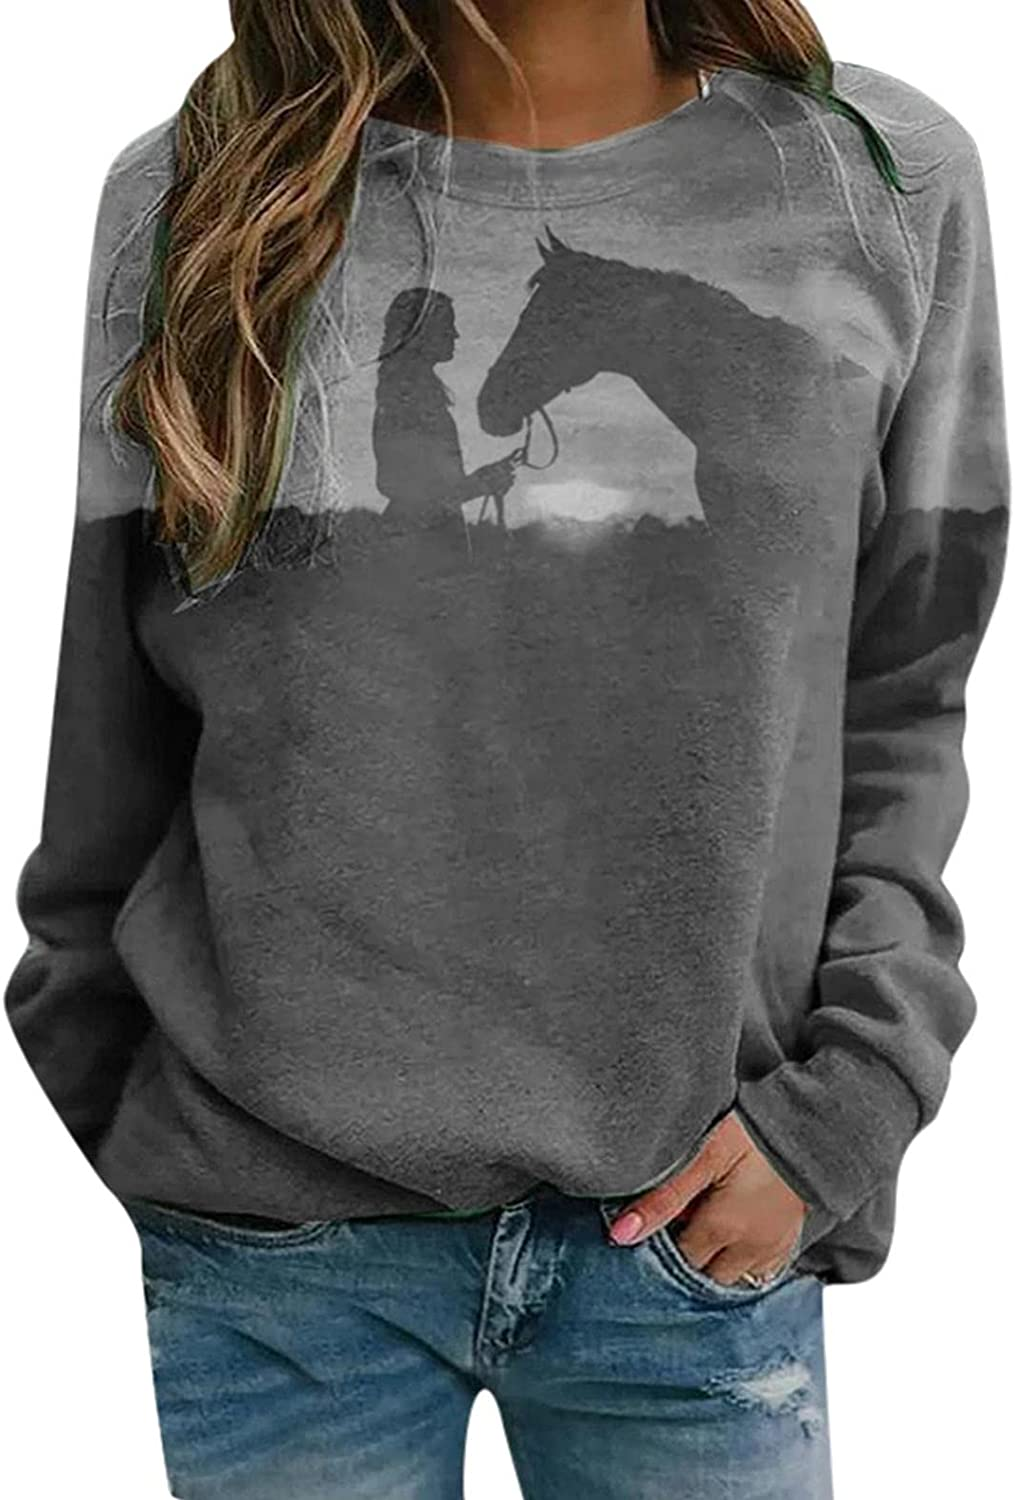 GUOBIOZIY Sweatshirt for Women Graphic,Womens Crewneck Tunic Printed Pullover Tops for Leggings Long Sleeve Sweaters